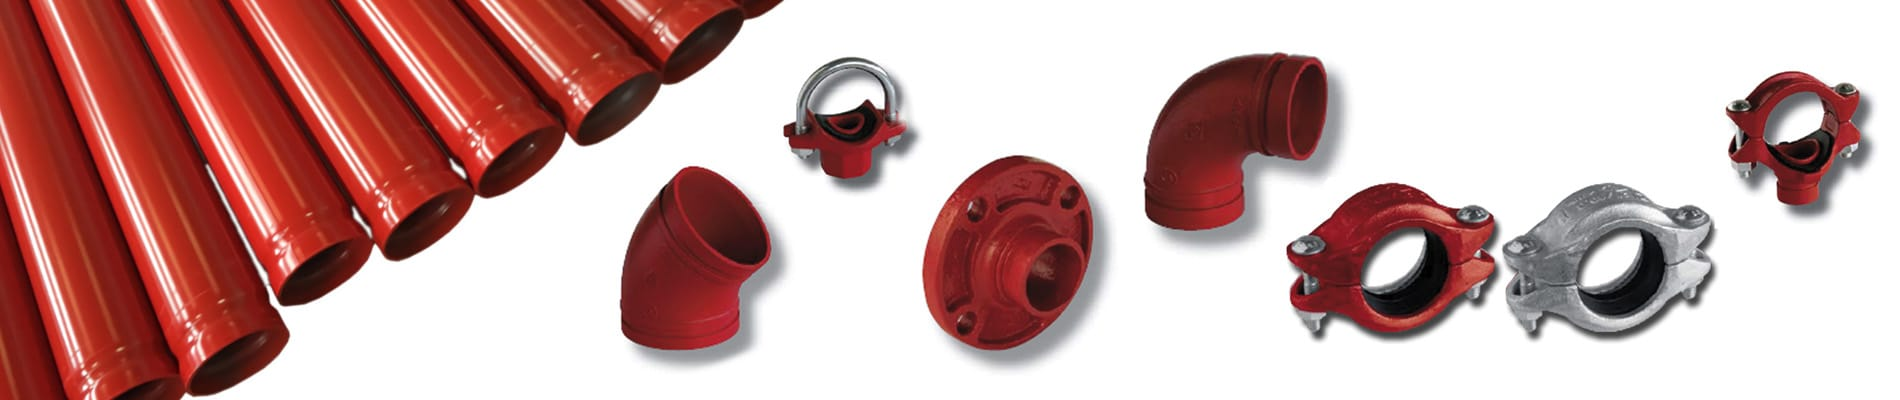 Grooved fire protection materials